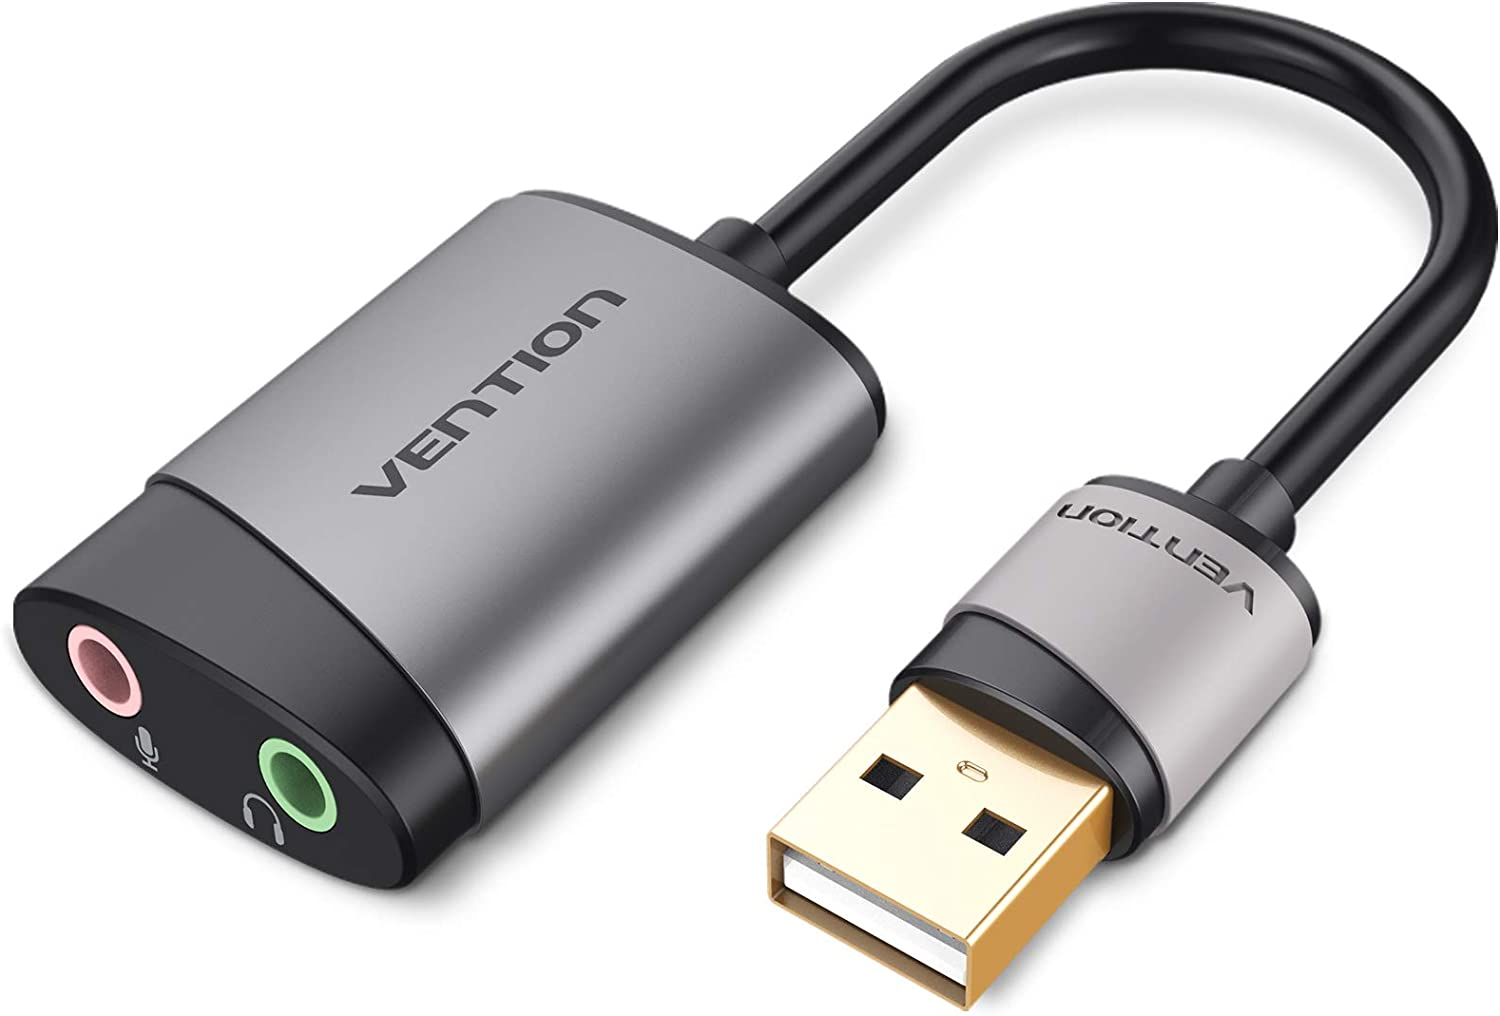 Amazon Com Vention Usb External Sound Card To 3 5mm Audio Jack Adapter Headphone And Microphone Compatible With Windows Mac Linux Laptop Desktops Ps5 Computers Accessories